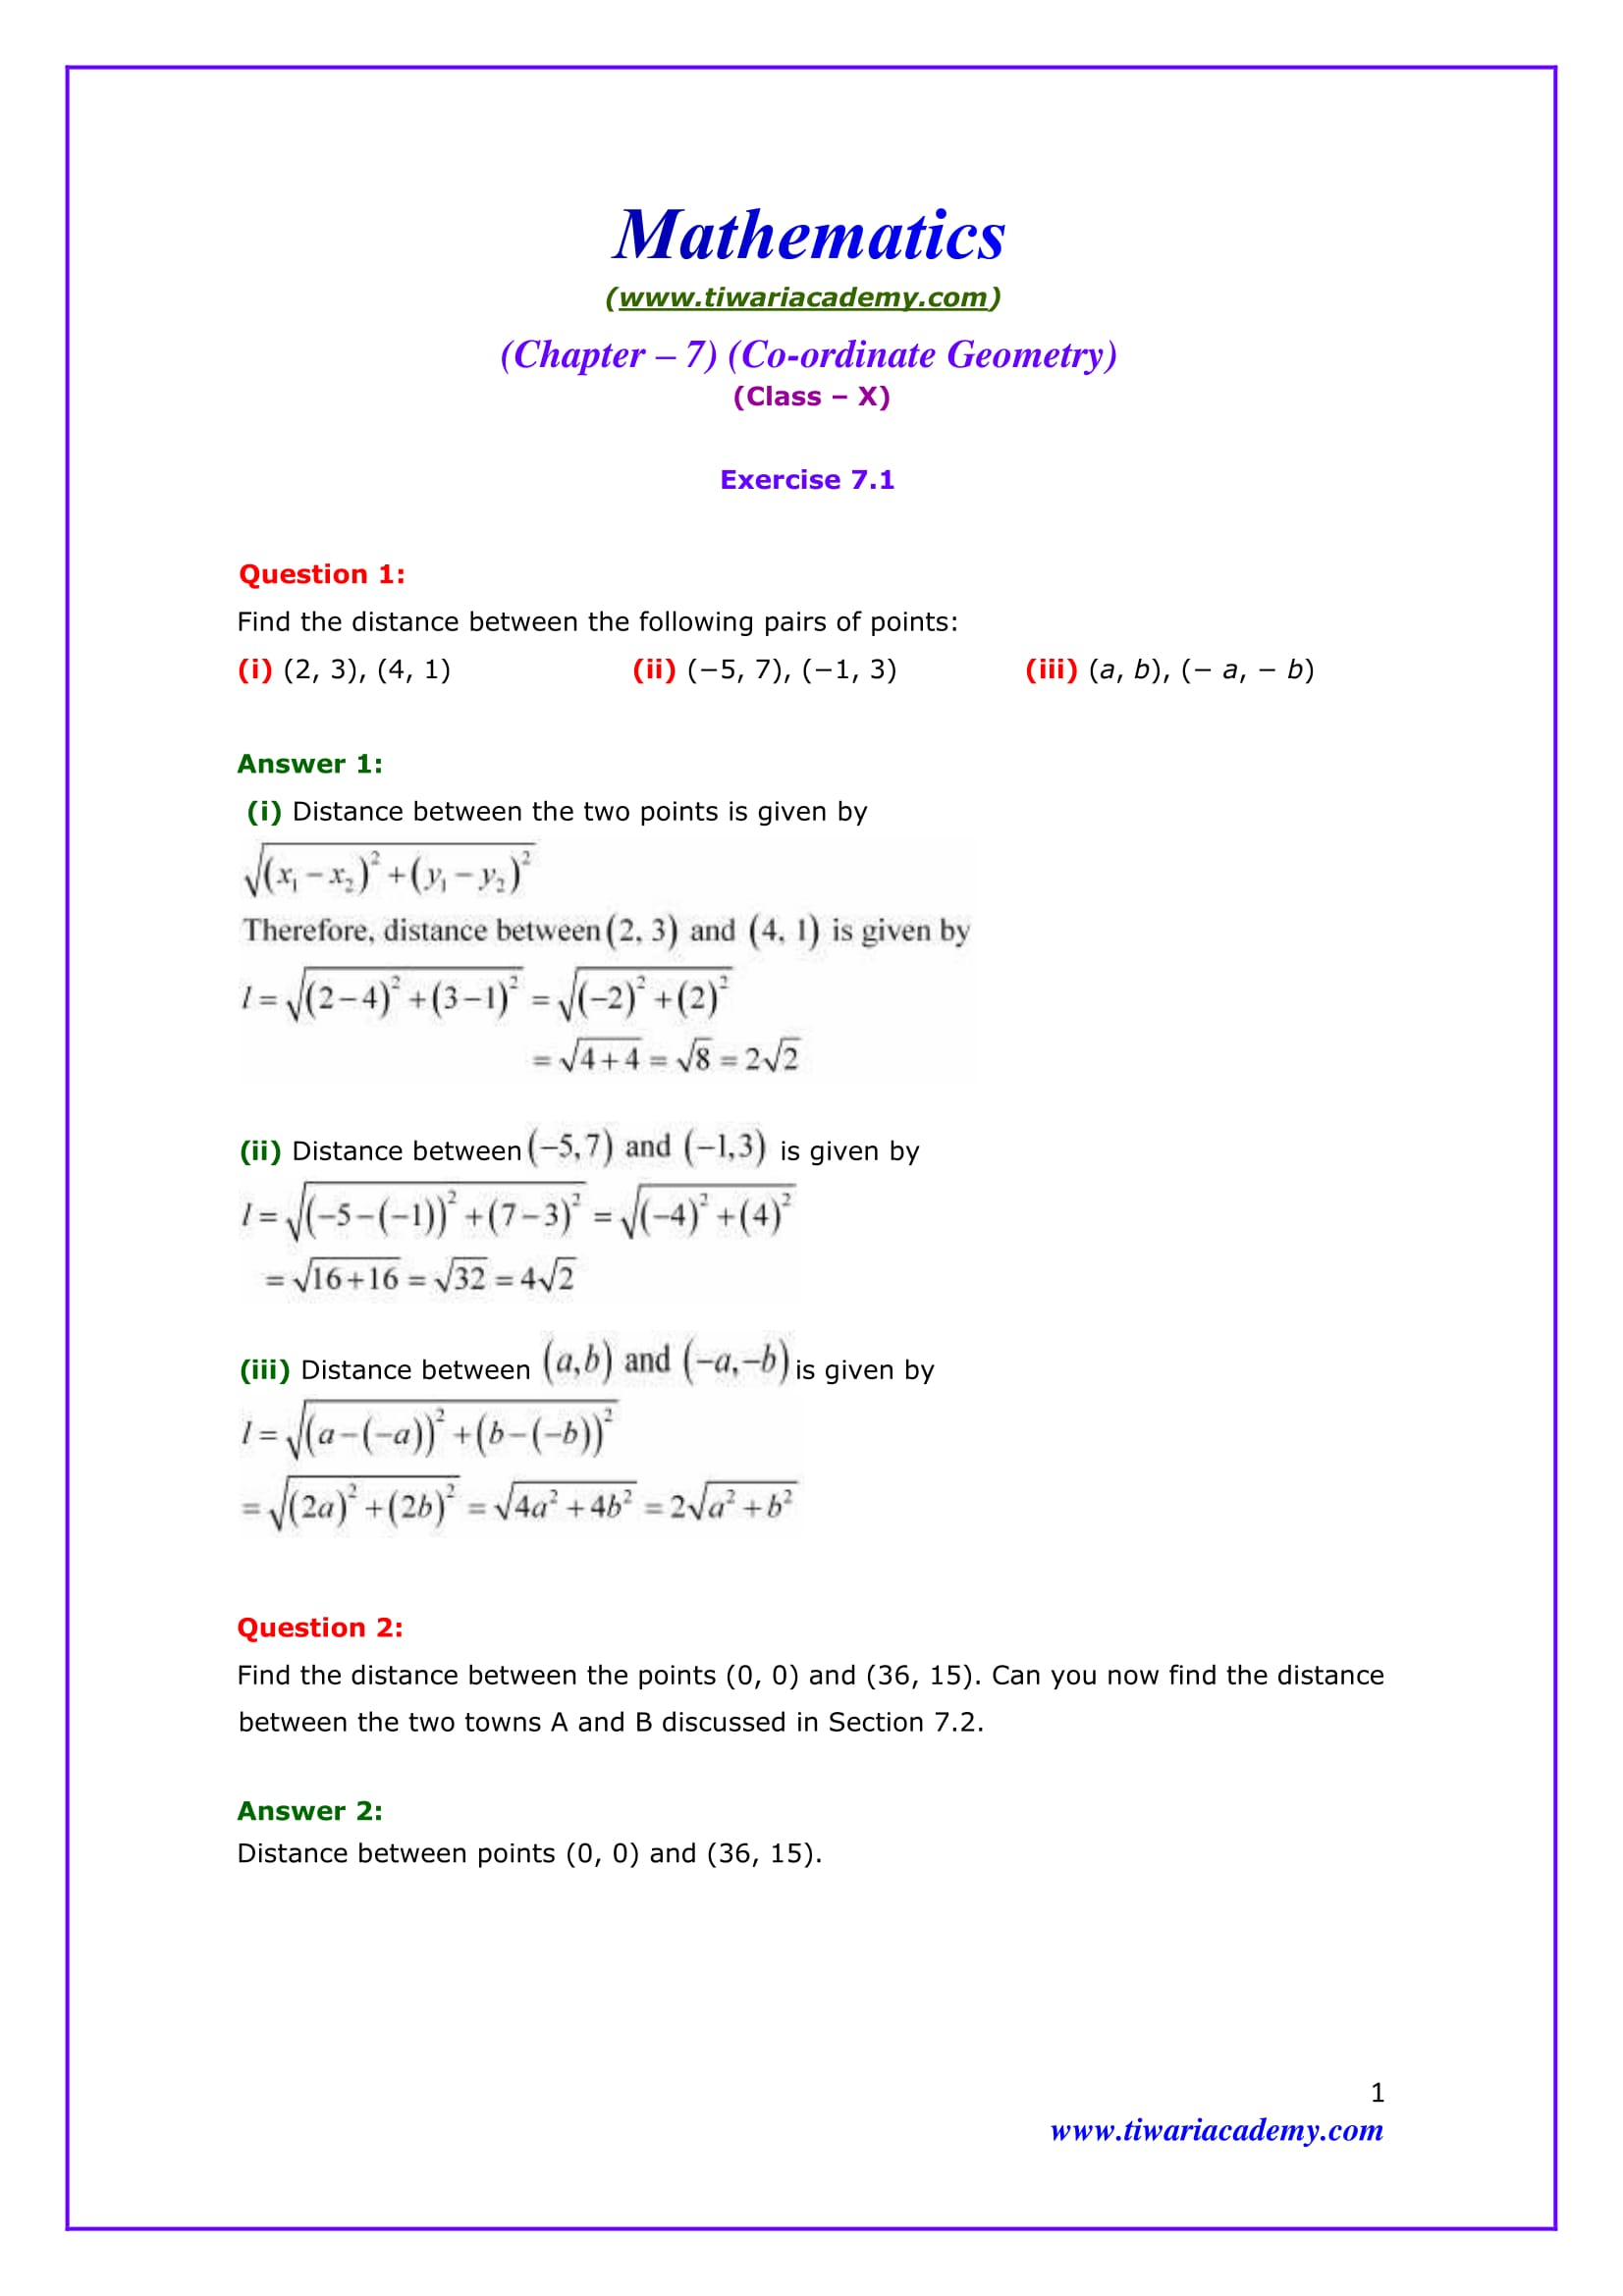 NCERT Solutions for Class 10 Maths Chapter 7 Exercise 7.1 Question 1 & 2